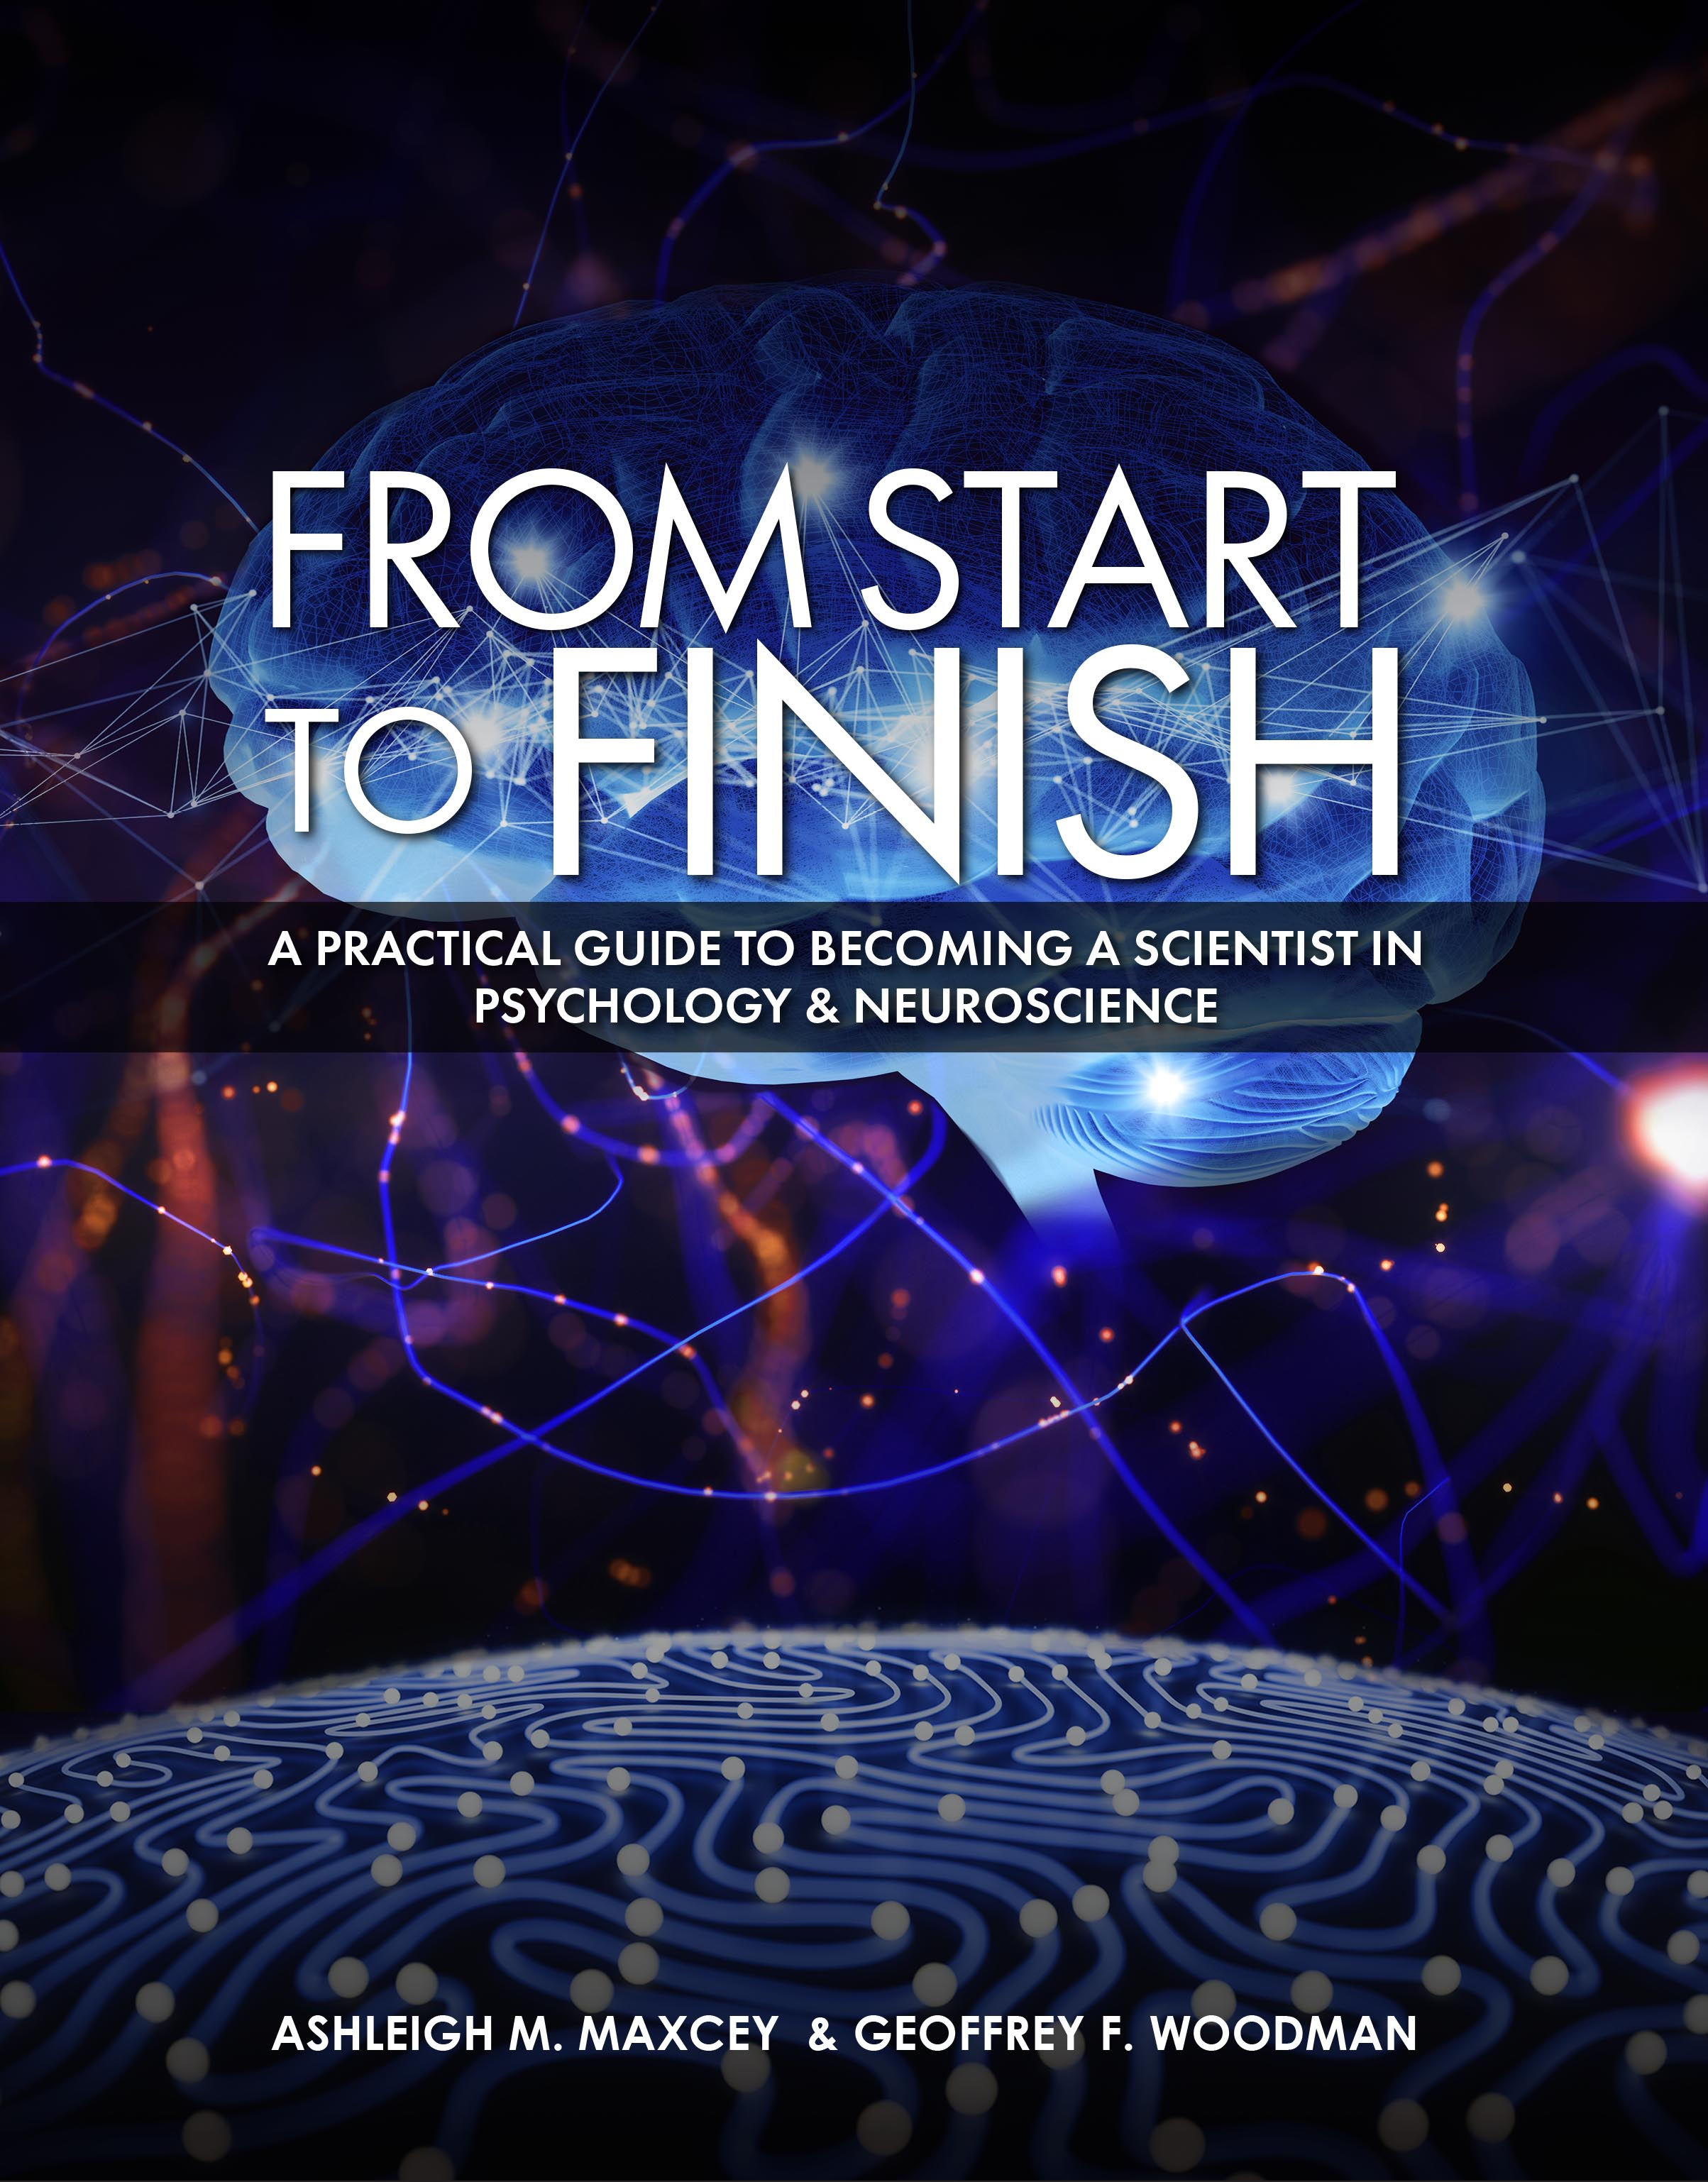 From Start to Finish: A Practical Guide to Becoming a Scientist in Psychology & Neuroscience - The book is available from our publisher for $29.95 HERE and amazon.com HERE.